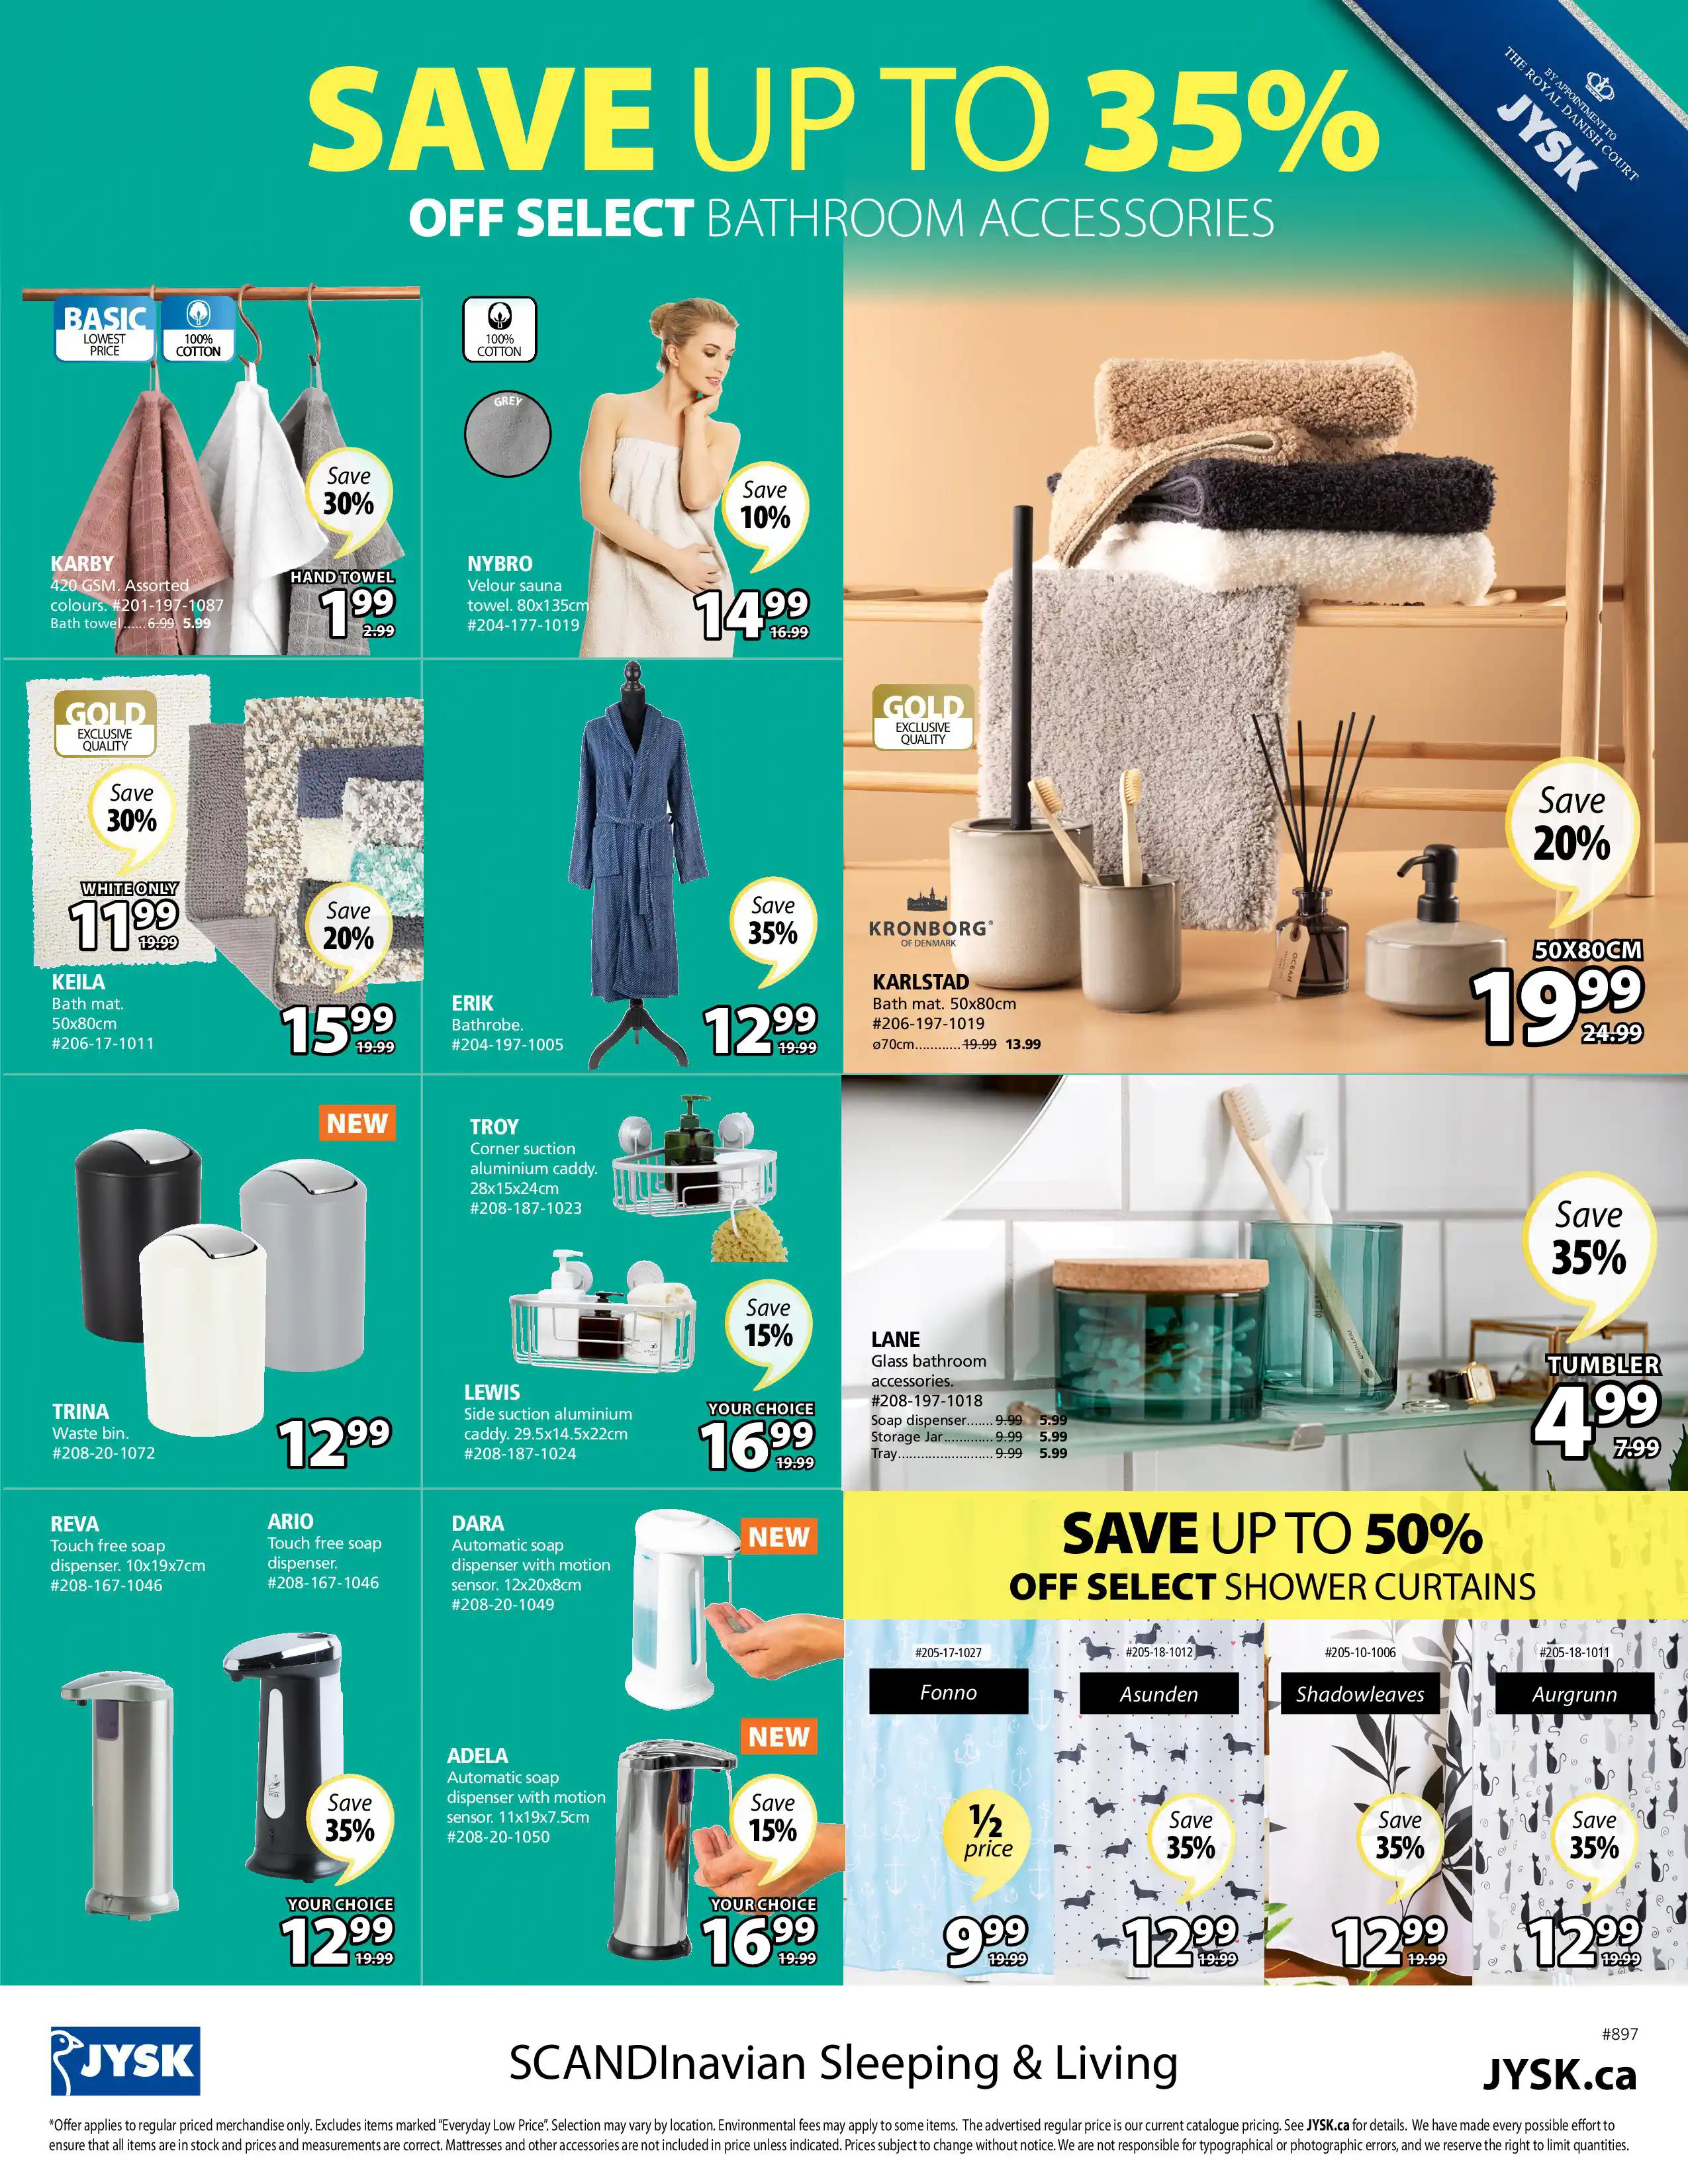 Jysk - Weekly Flyer Specials - Page 21